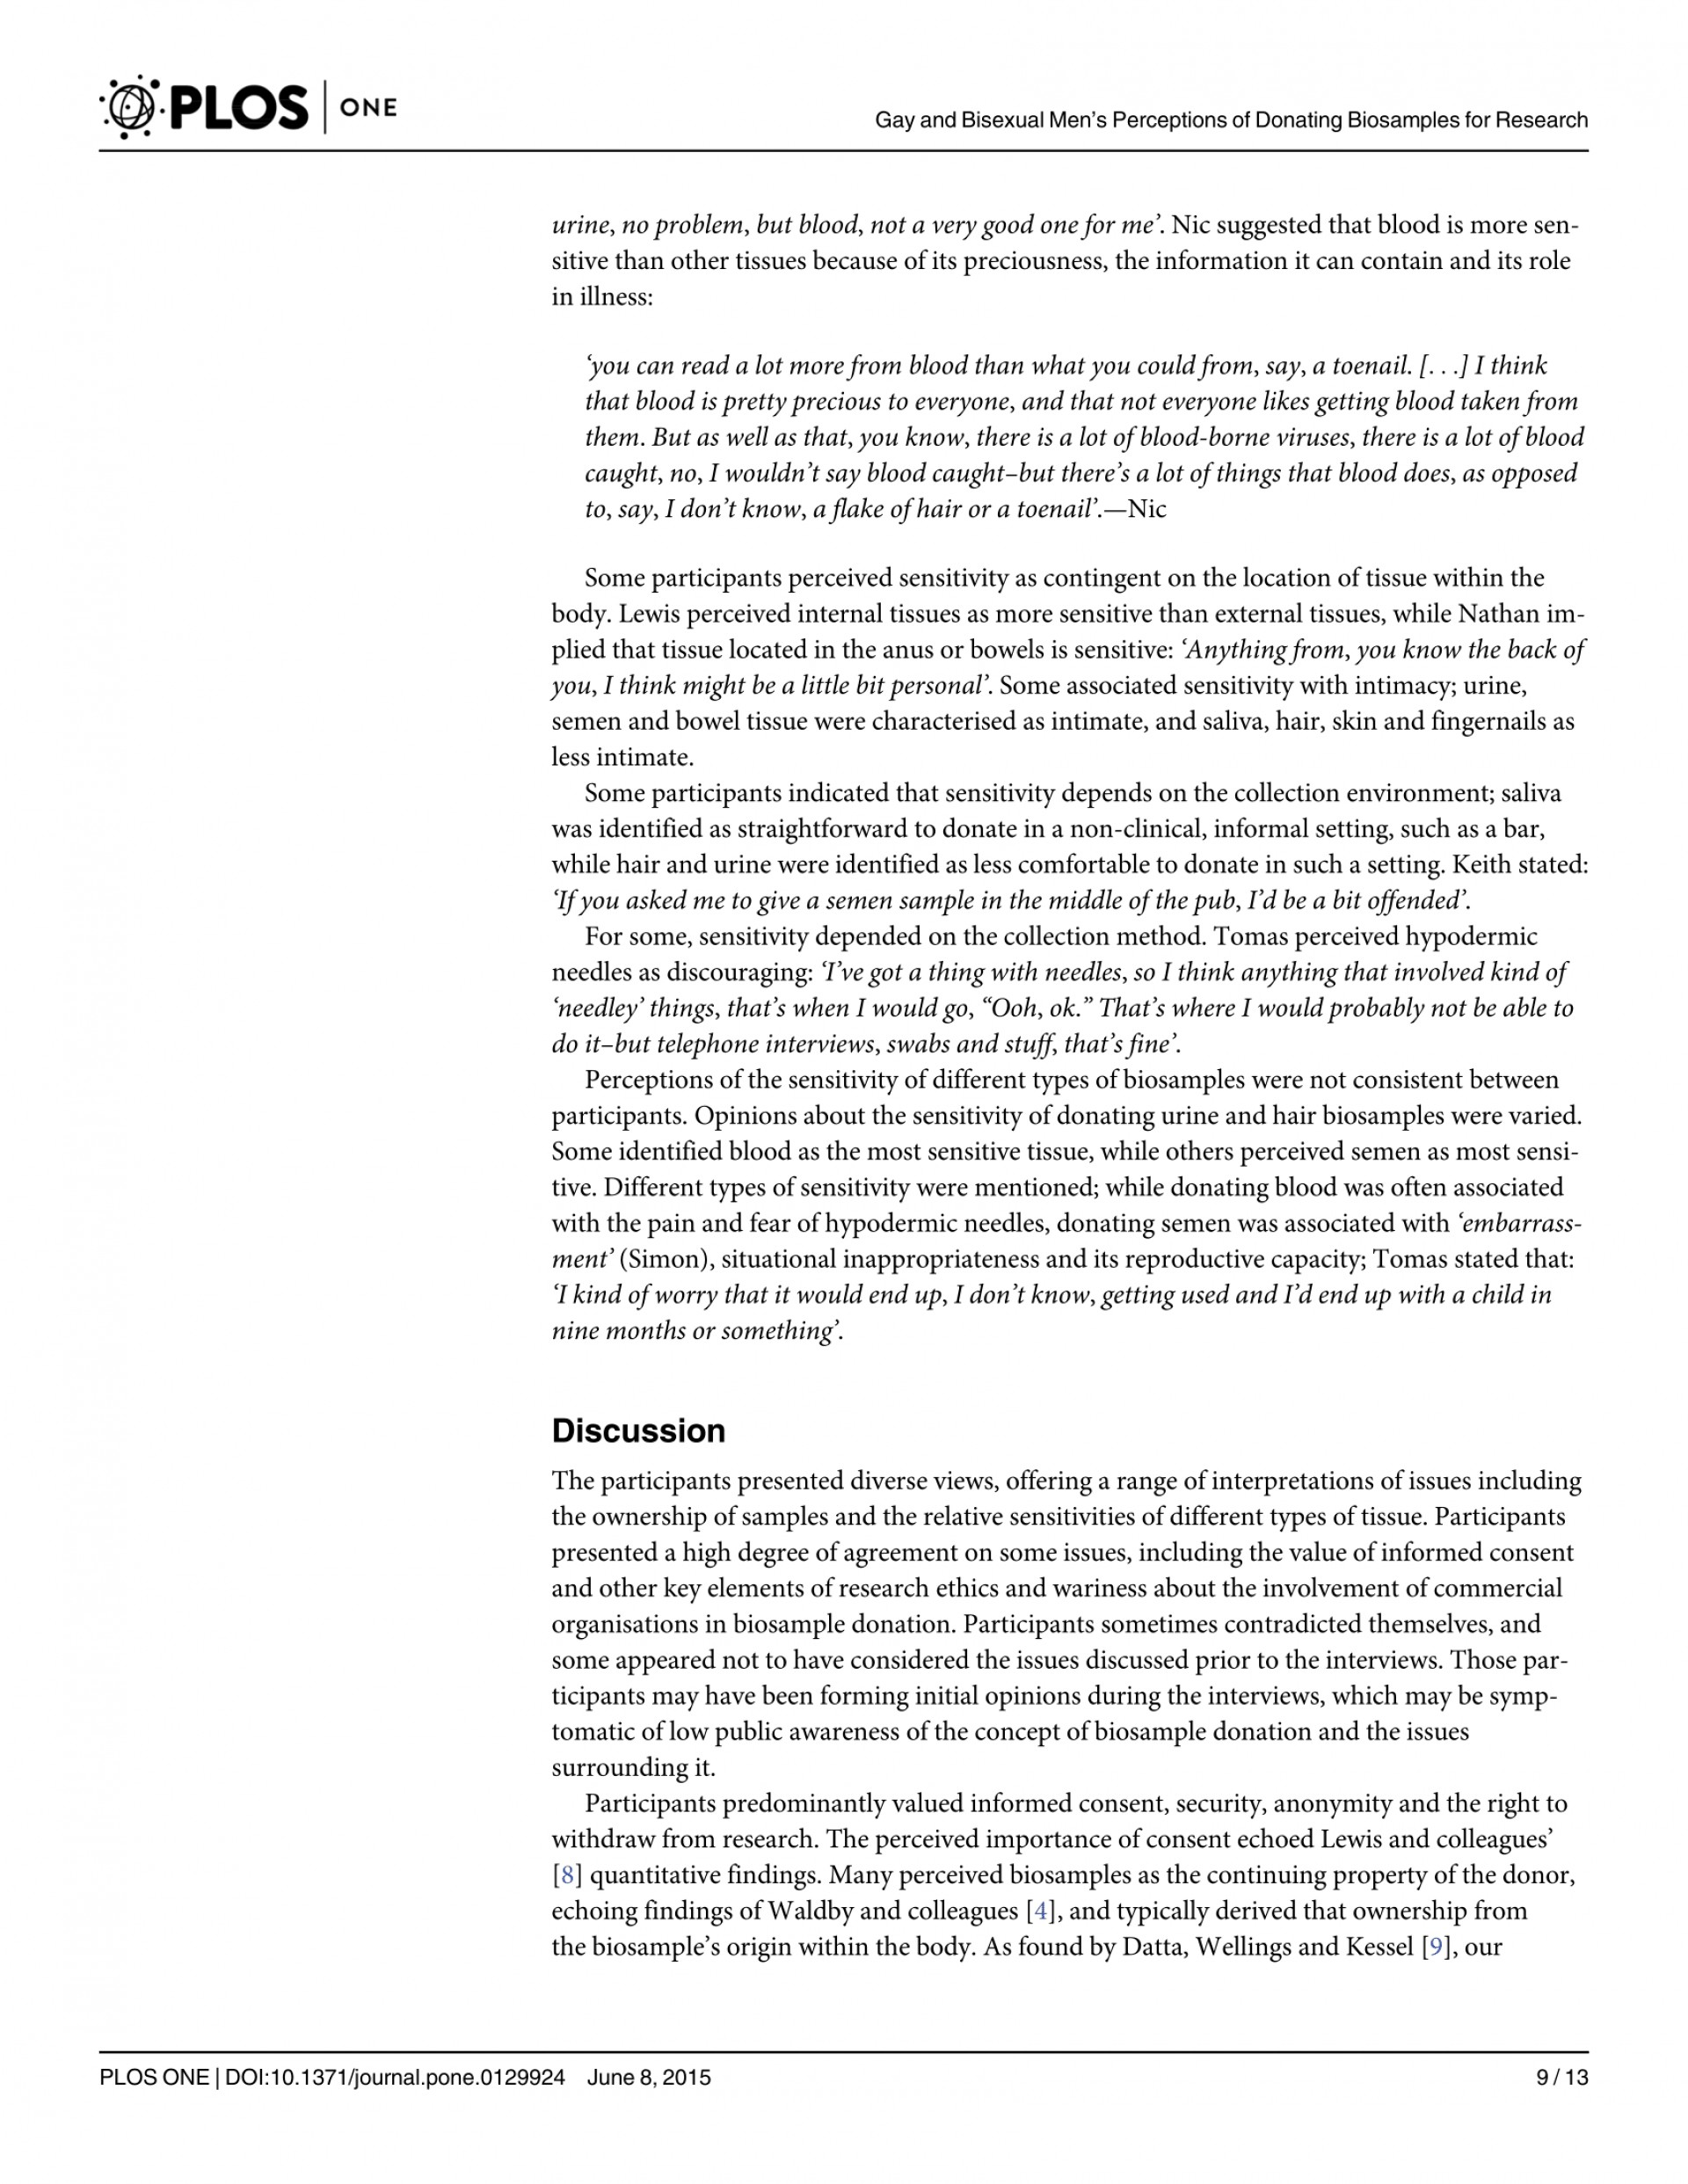 007 Research Paper Discussion How To Write Methodology Beautiful A Section The Of Qualitative Pdf 1920